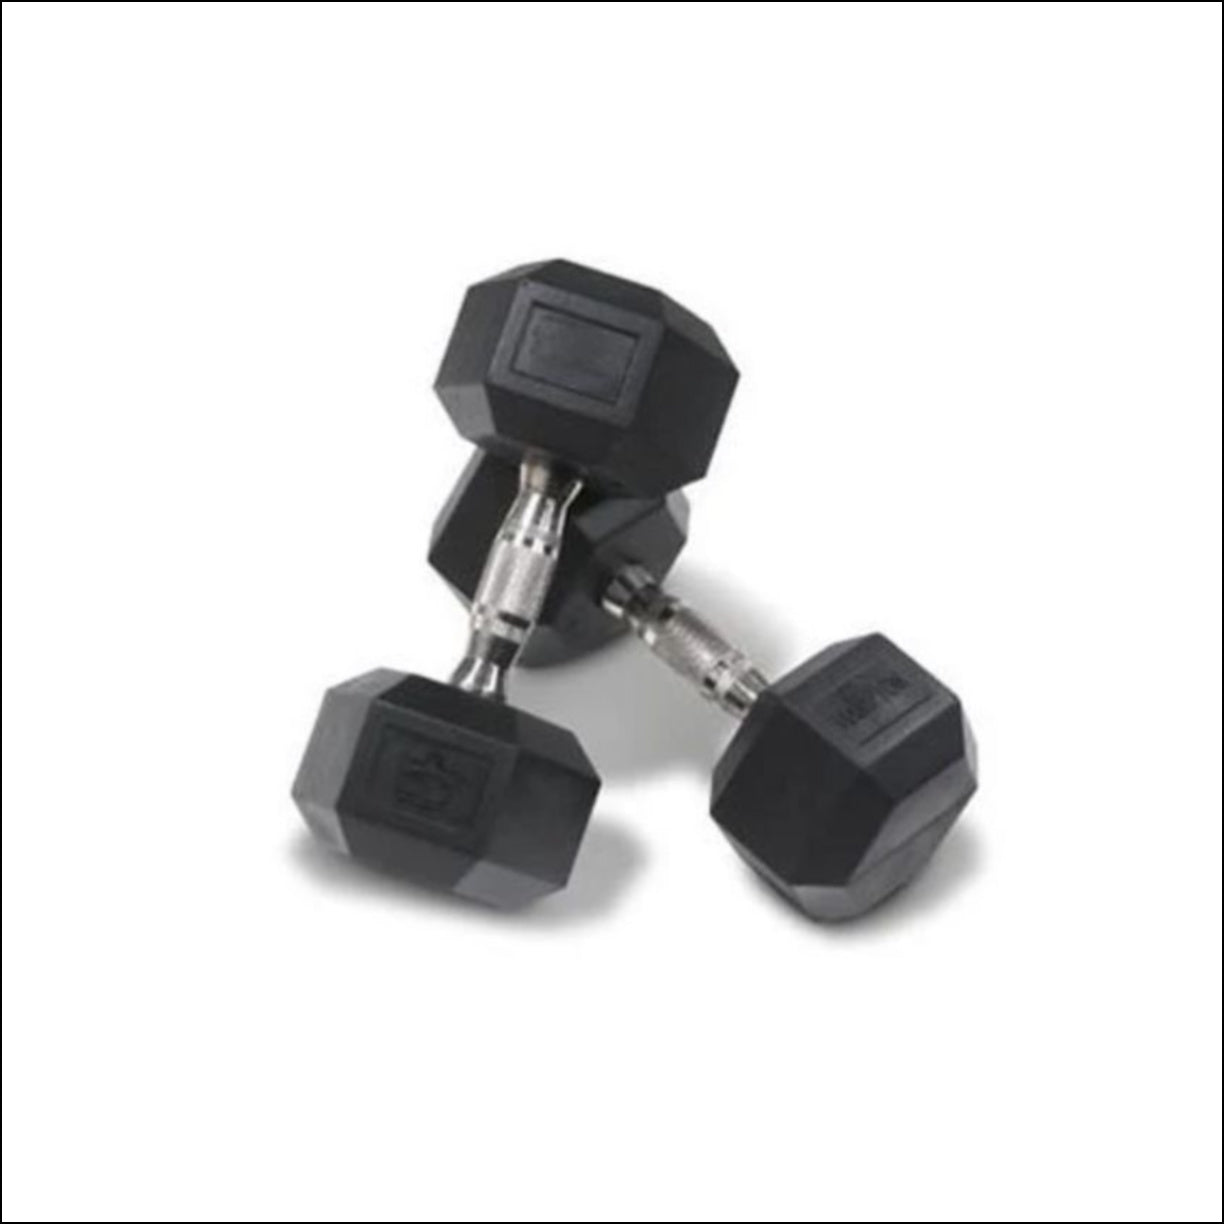 PAIR OF 37.5-KG RUBBER HEX DUMBBELLS  Muscle Motion Rubber coated hexagonal dumbbells with ergonomic handles are designed for increased comfort and improved durability. Rubber coating reduces noise improves life cycle of the product  (other finishes such as chrome and cast iron are subject to chipping and rust). Rubber coated dumbbells are also kinder on floor surfaces. The hexagonal shaped ends are designed to prevent the dumbbell from rolling on the floor or dumbbell rack.